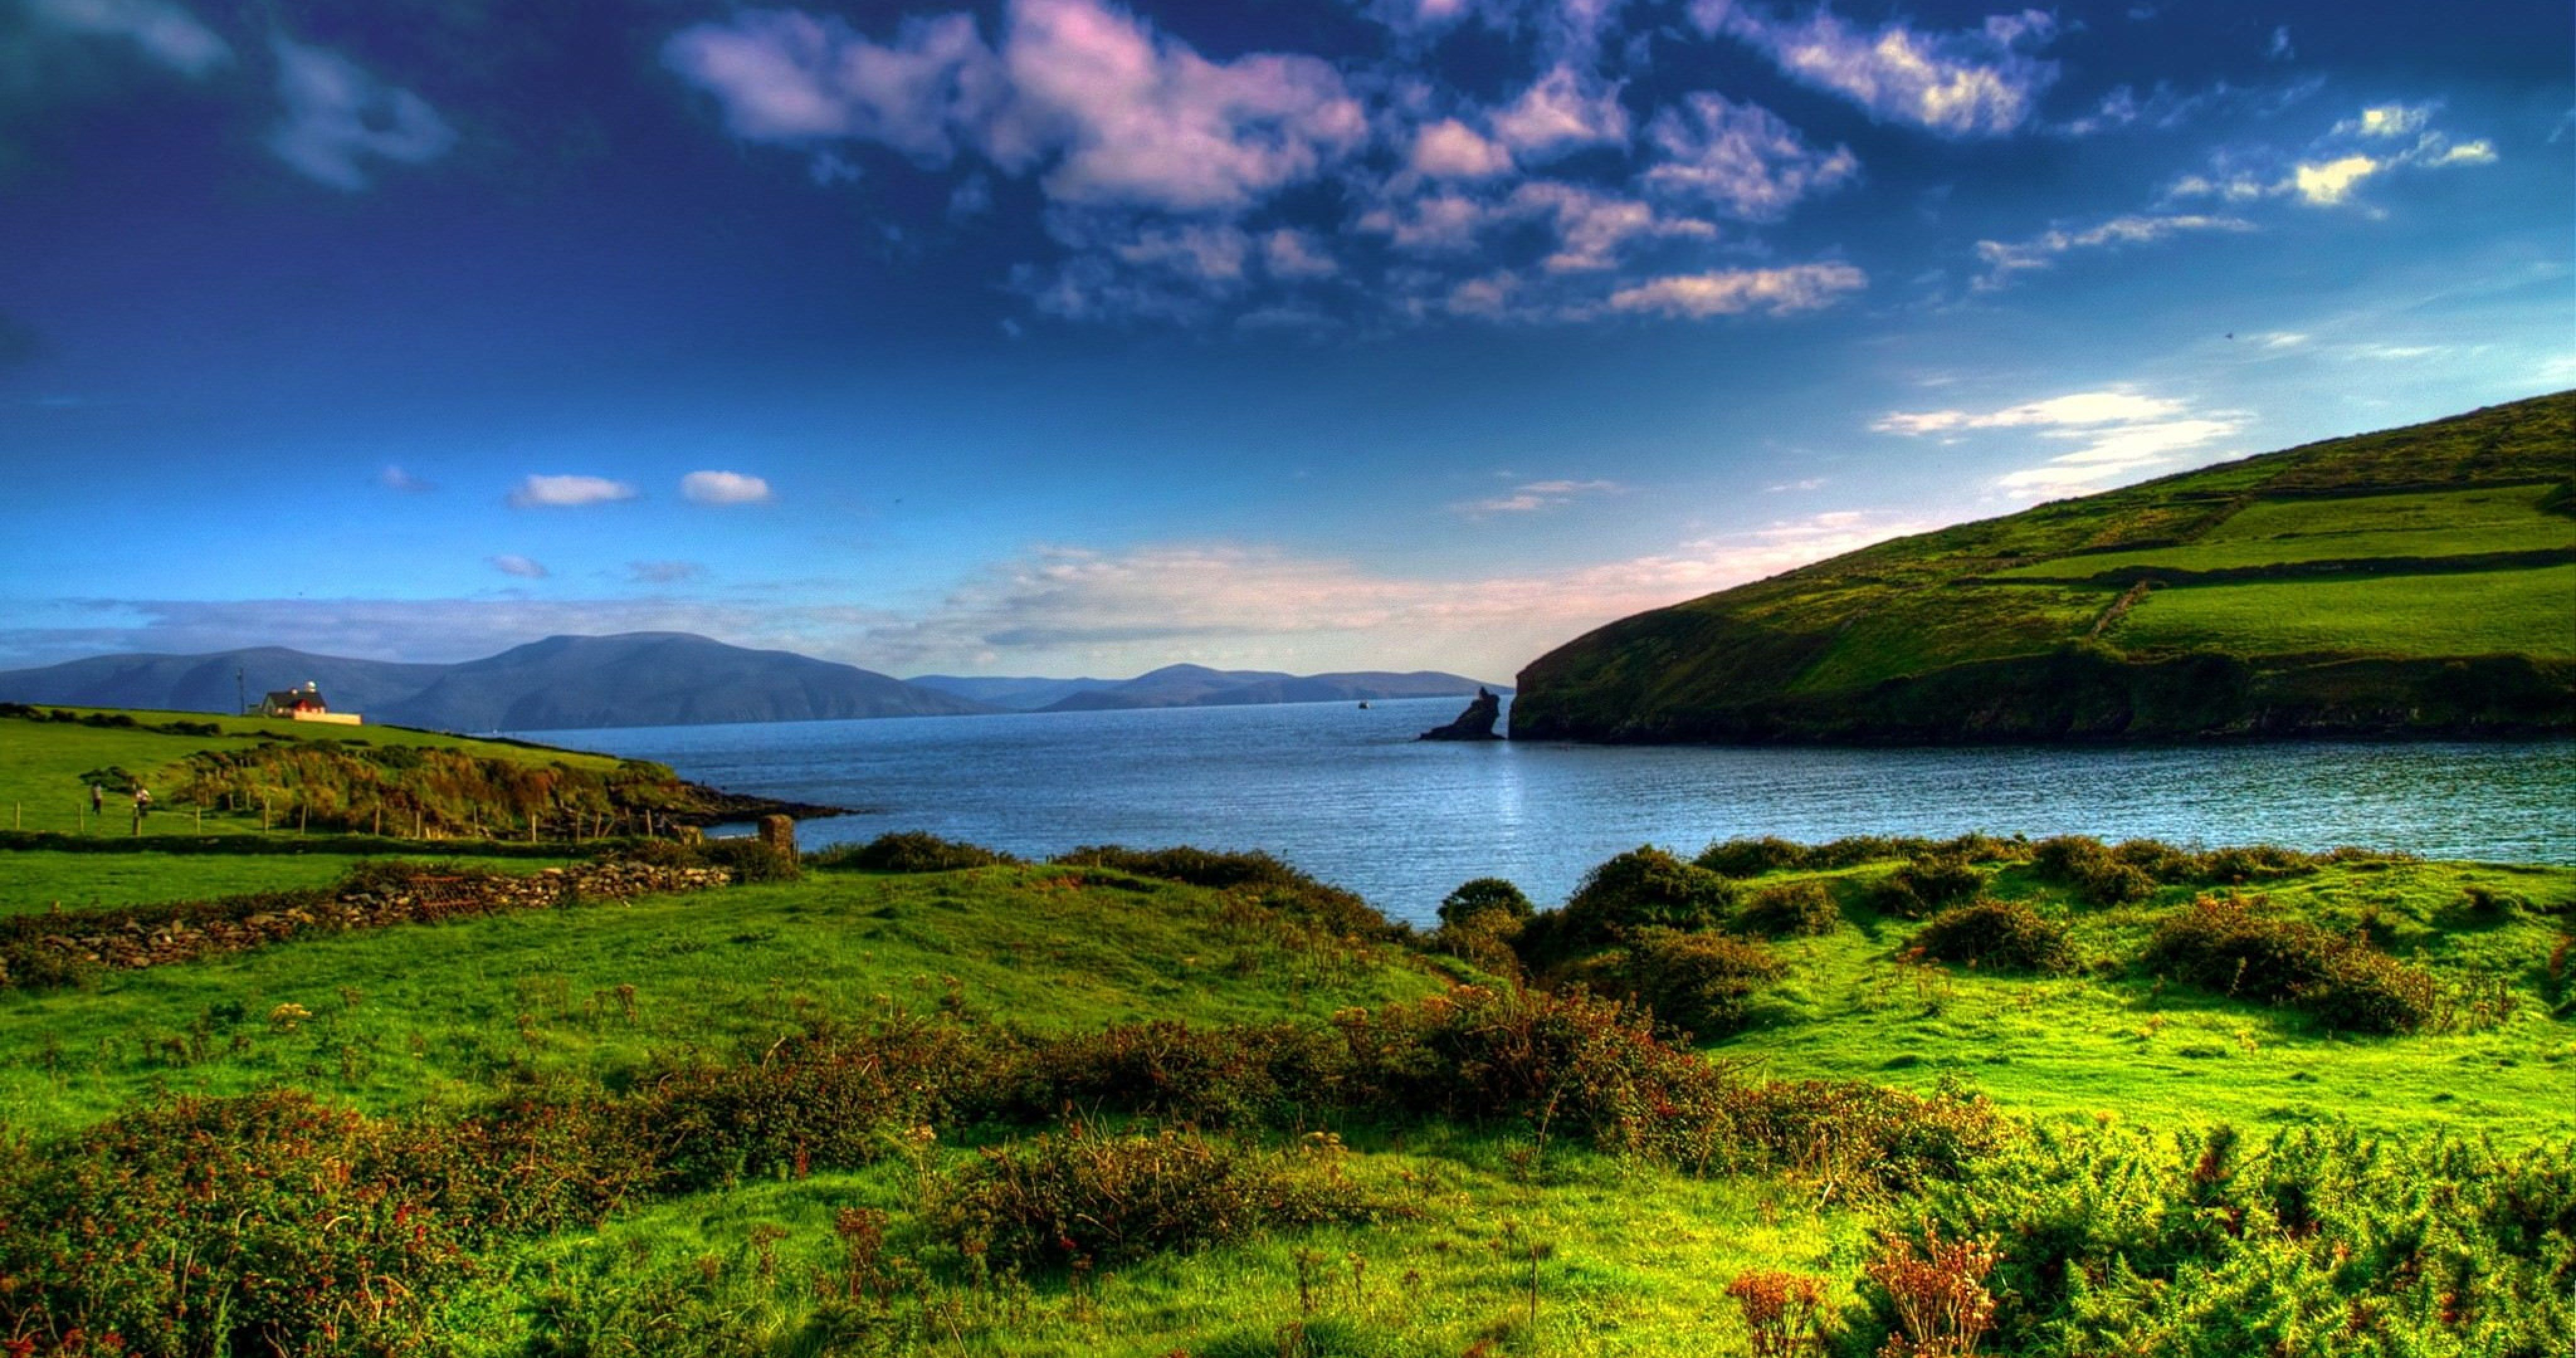 4K Landscape Scenery Wallpapers High Quality   Download Free